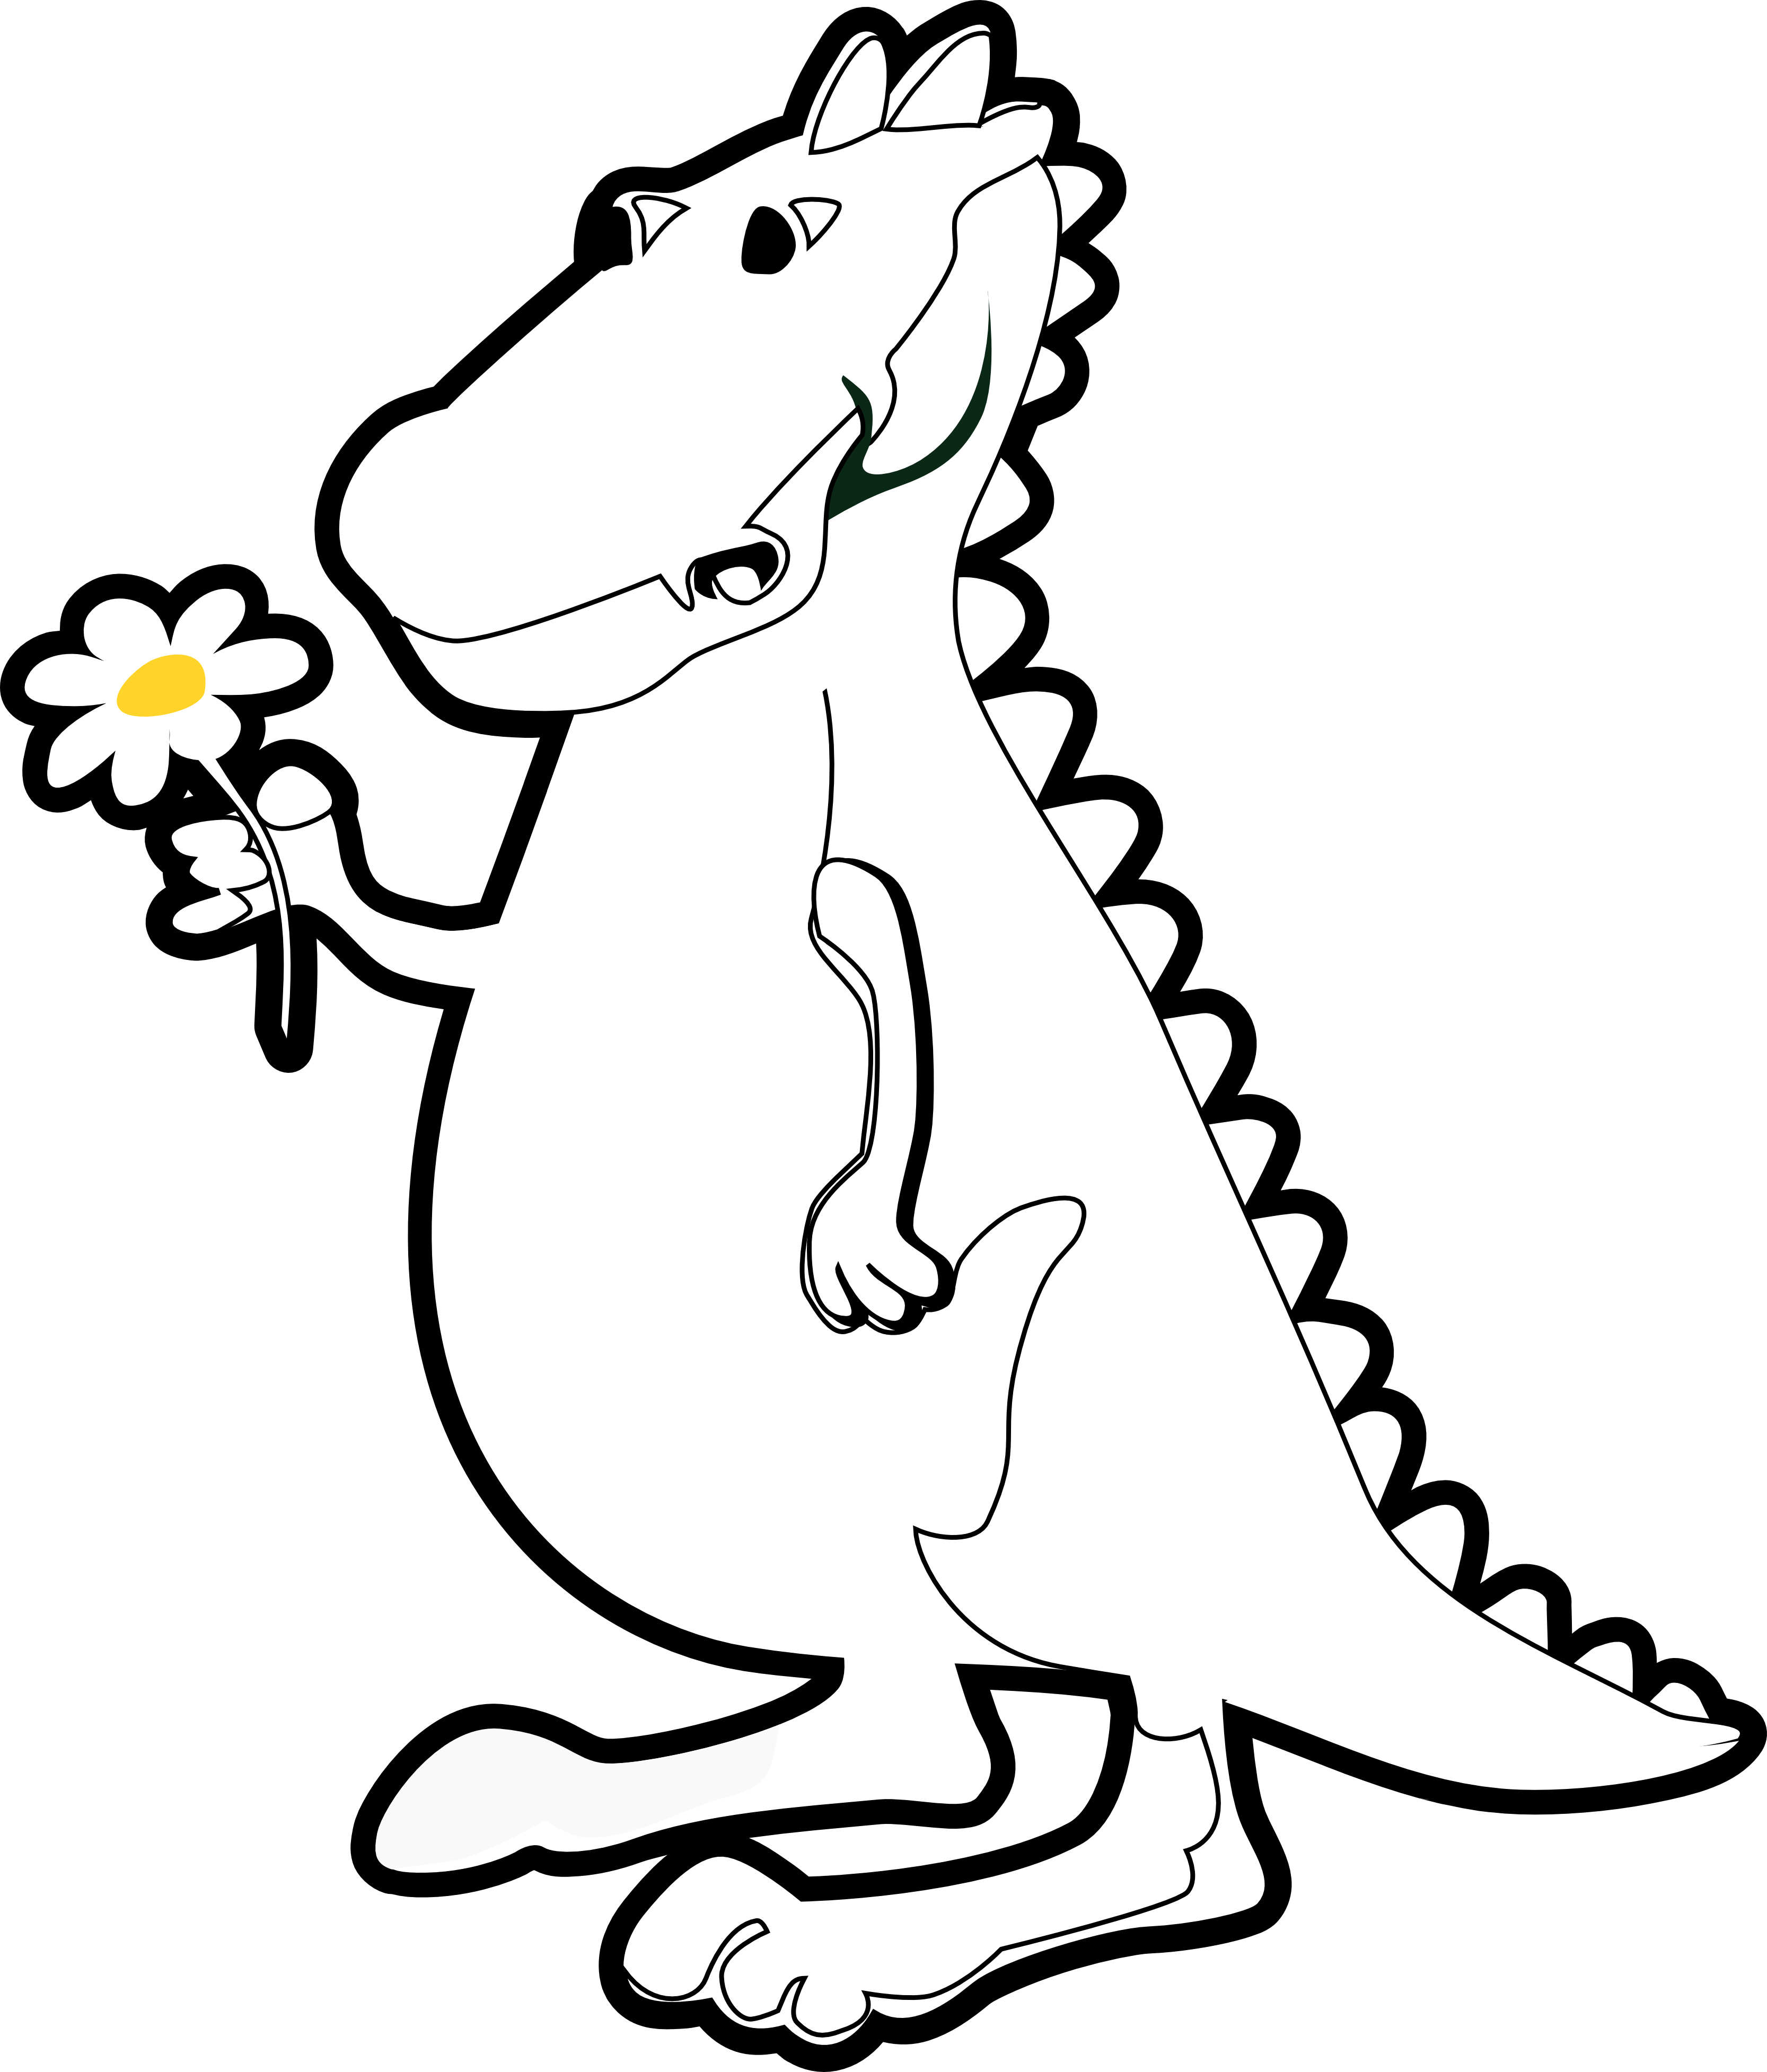 Dinosaur Clipart Black And White   Free download on ClipArtMag